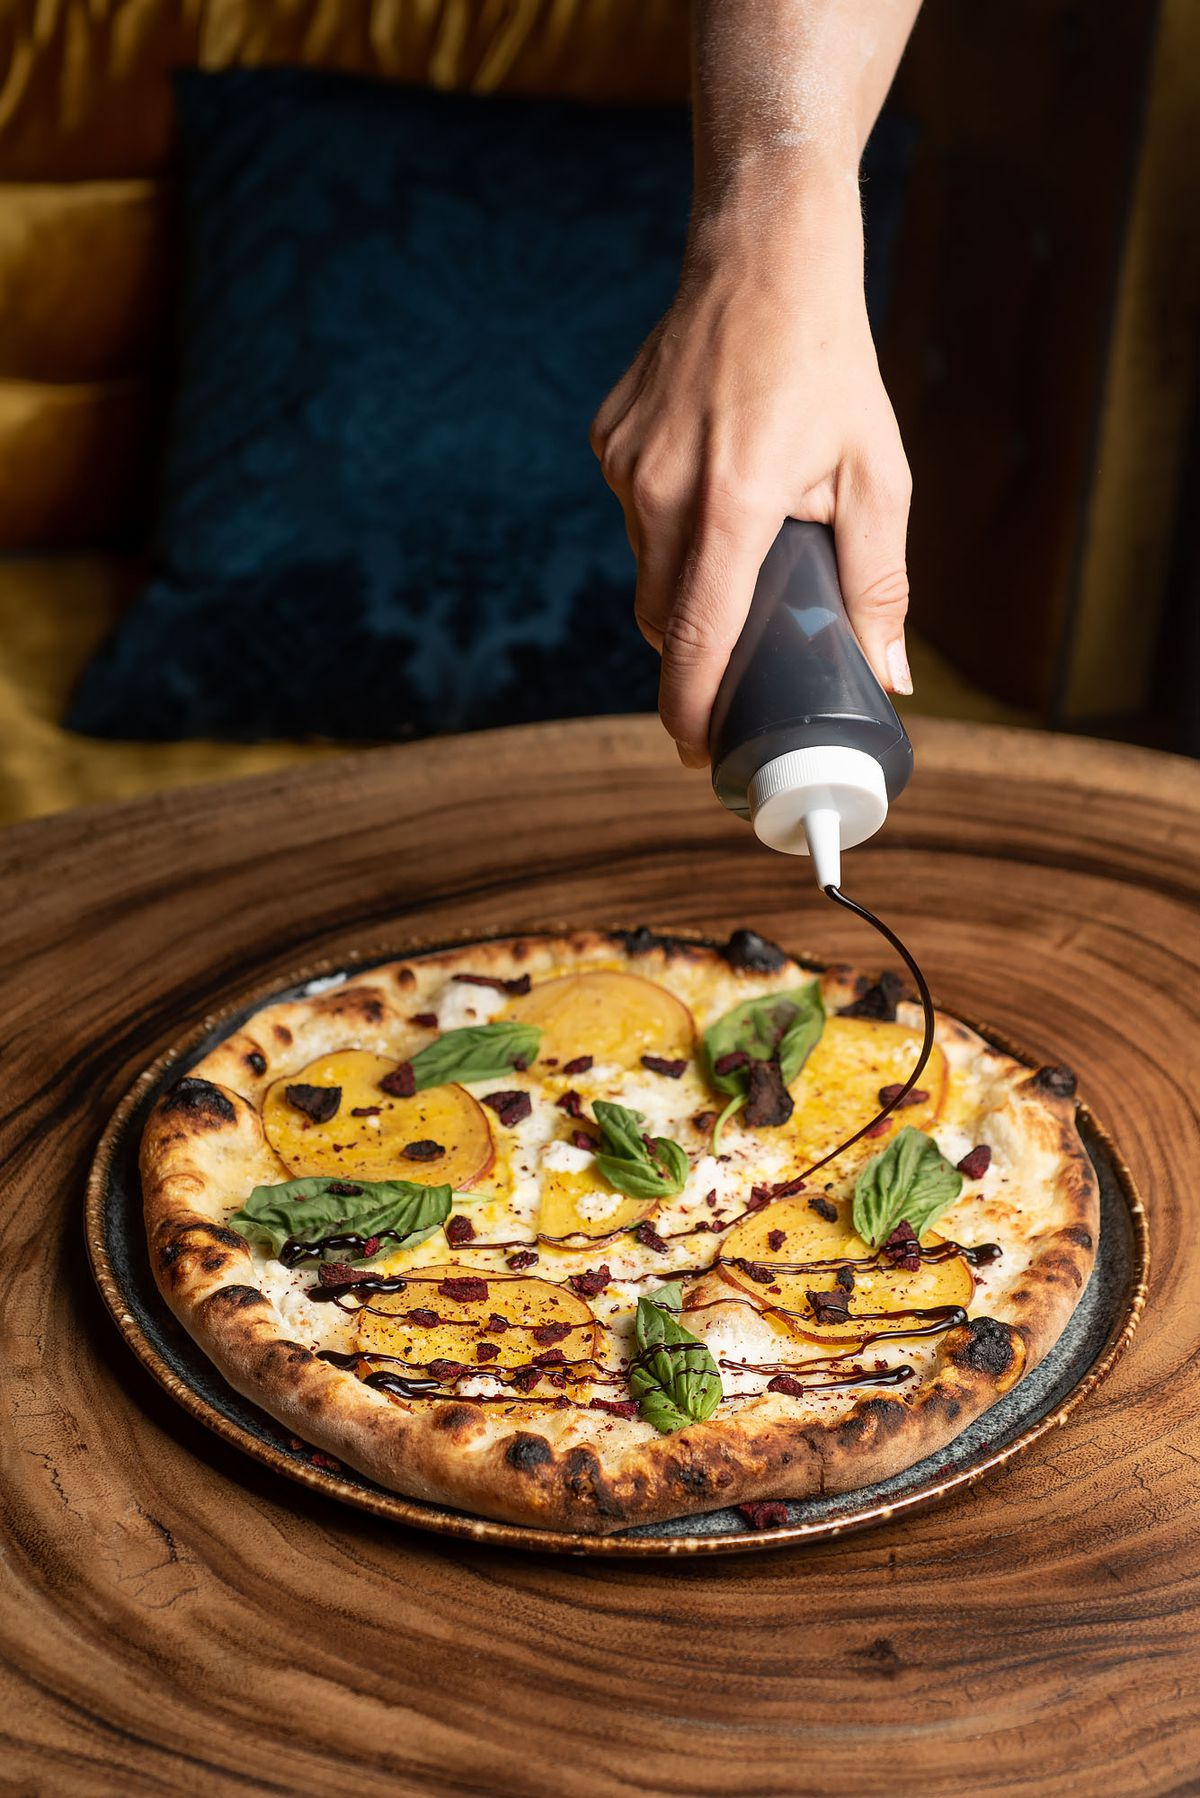 A blistered pizza topped with golden beets and drizzled with balsamic.